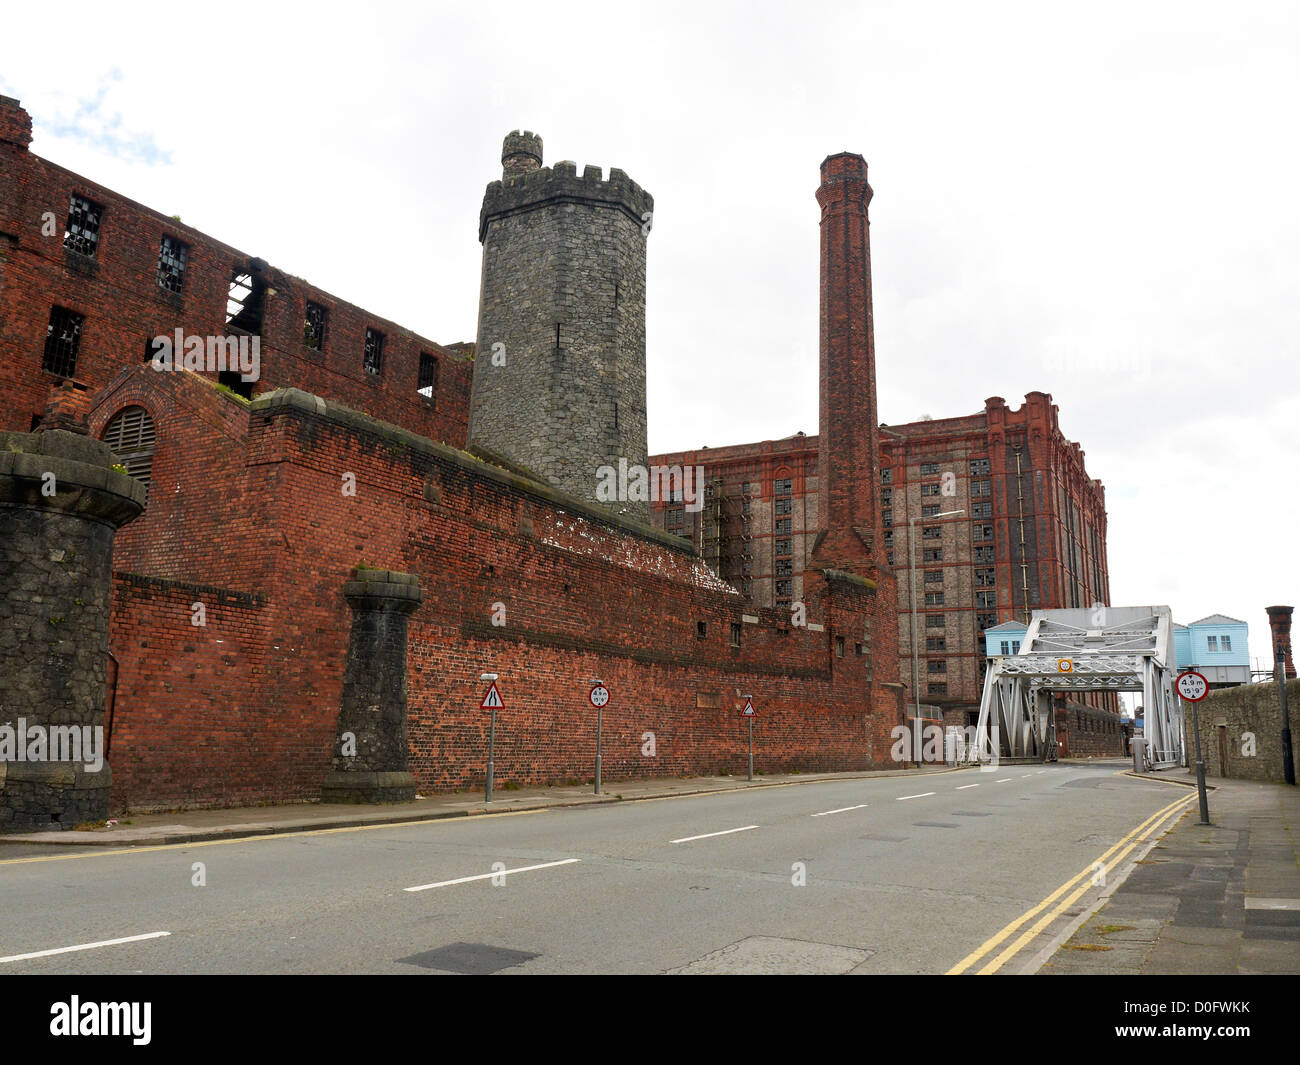 Bascule bridge with Tobacco warehouse and Stanley Dock on Dock Road in Liverpool UK Stock Photo